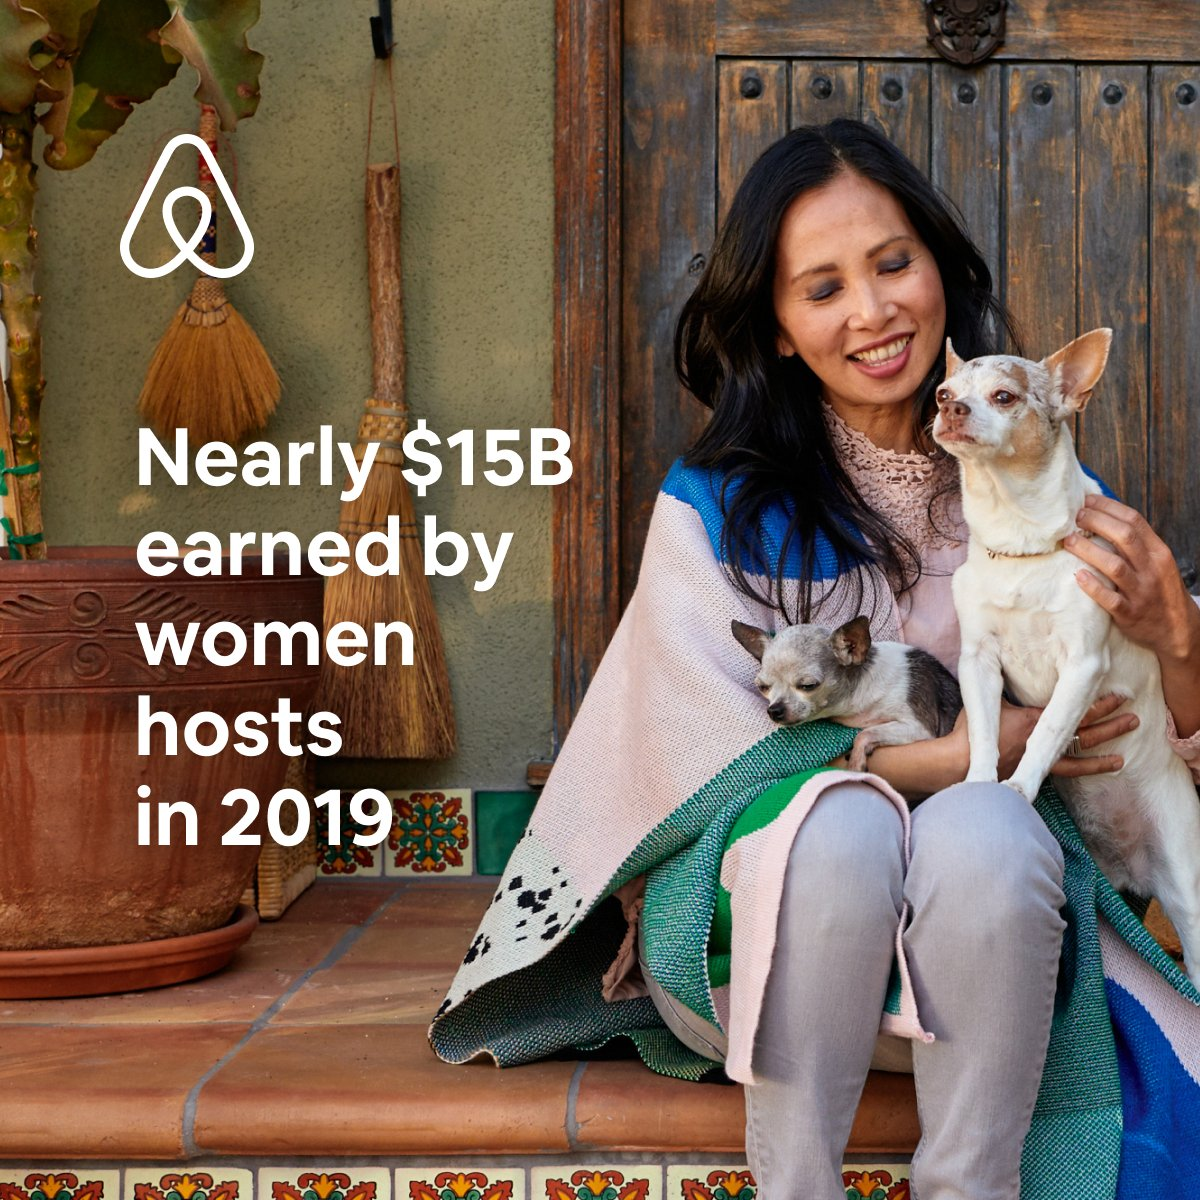 With women hosts earning nearly $15B in 2019, women continue to lead the way in our community. 📈54% report their earnings have helped them grow their business 🏠51% said the money from hosting has allowed them to stay in their homes See details here: abnb.co/gcrm